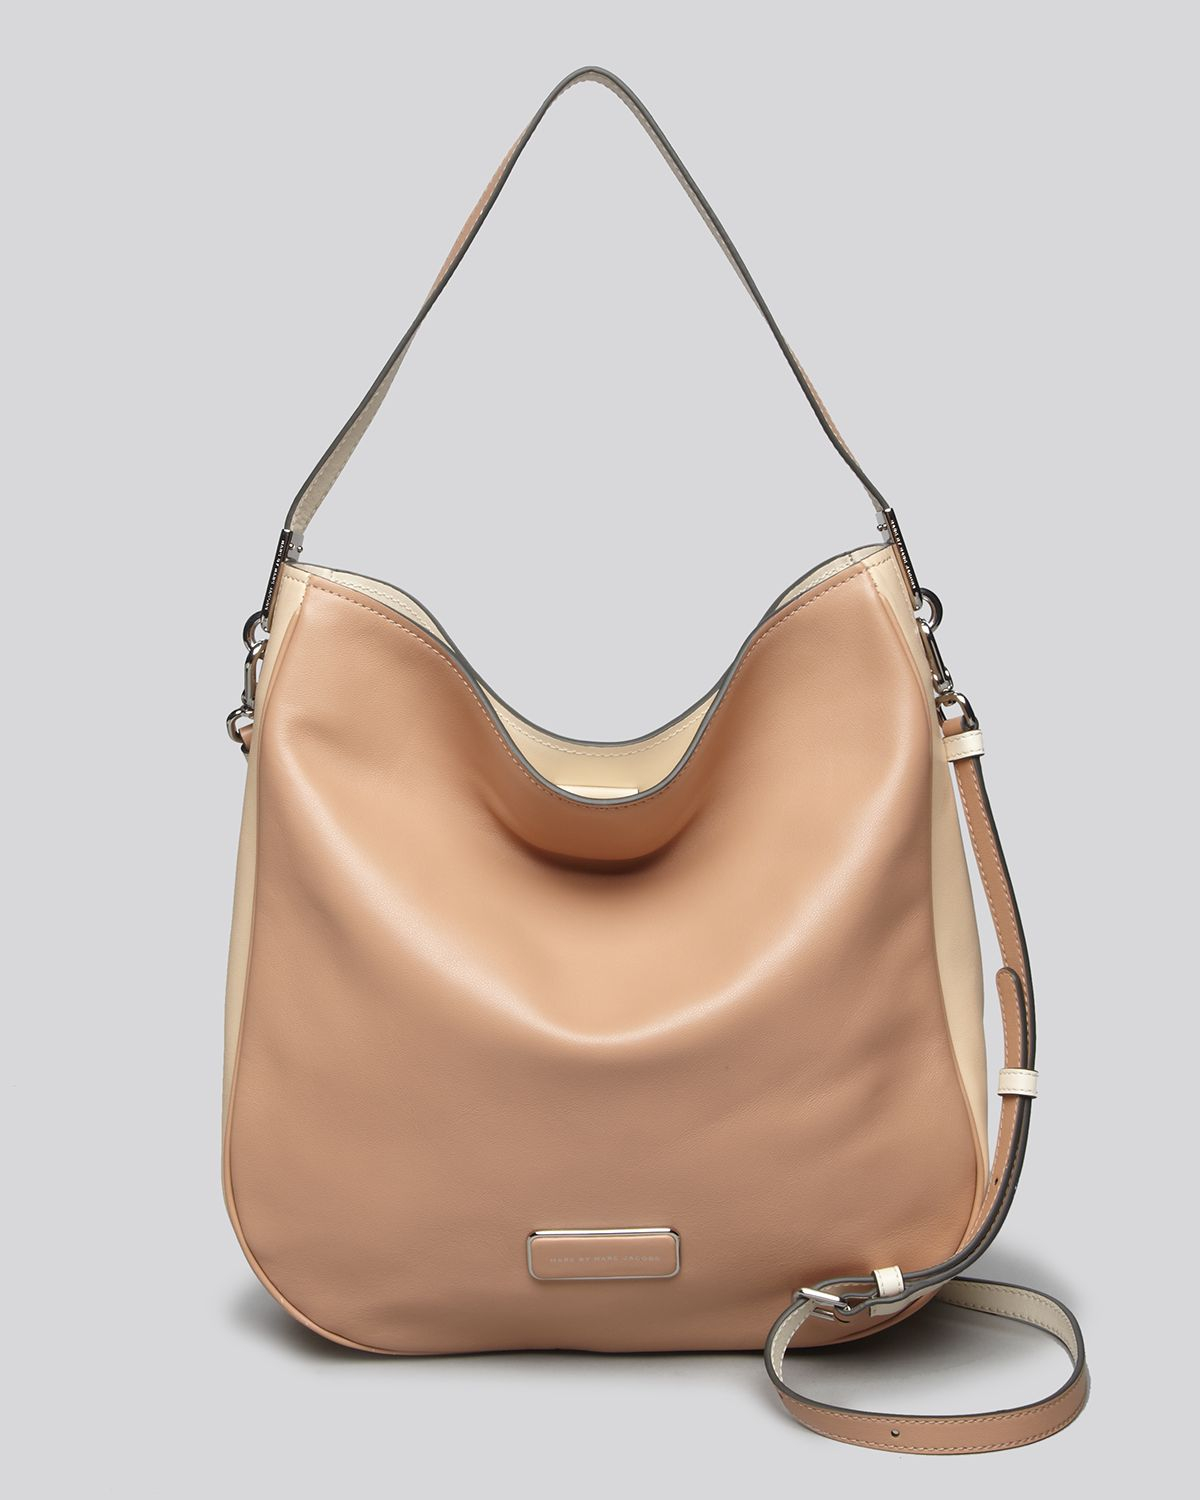 Marc Jacobs Hobo Laukku : Marc by jacobs hobo colorblock ligero lyst